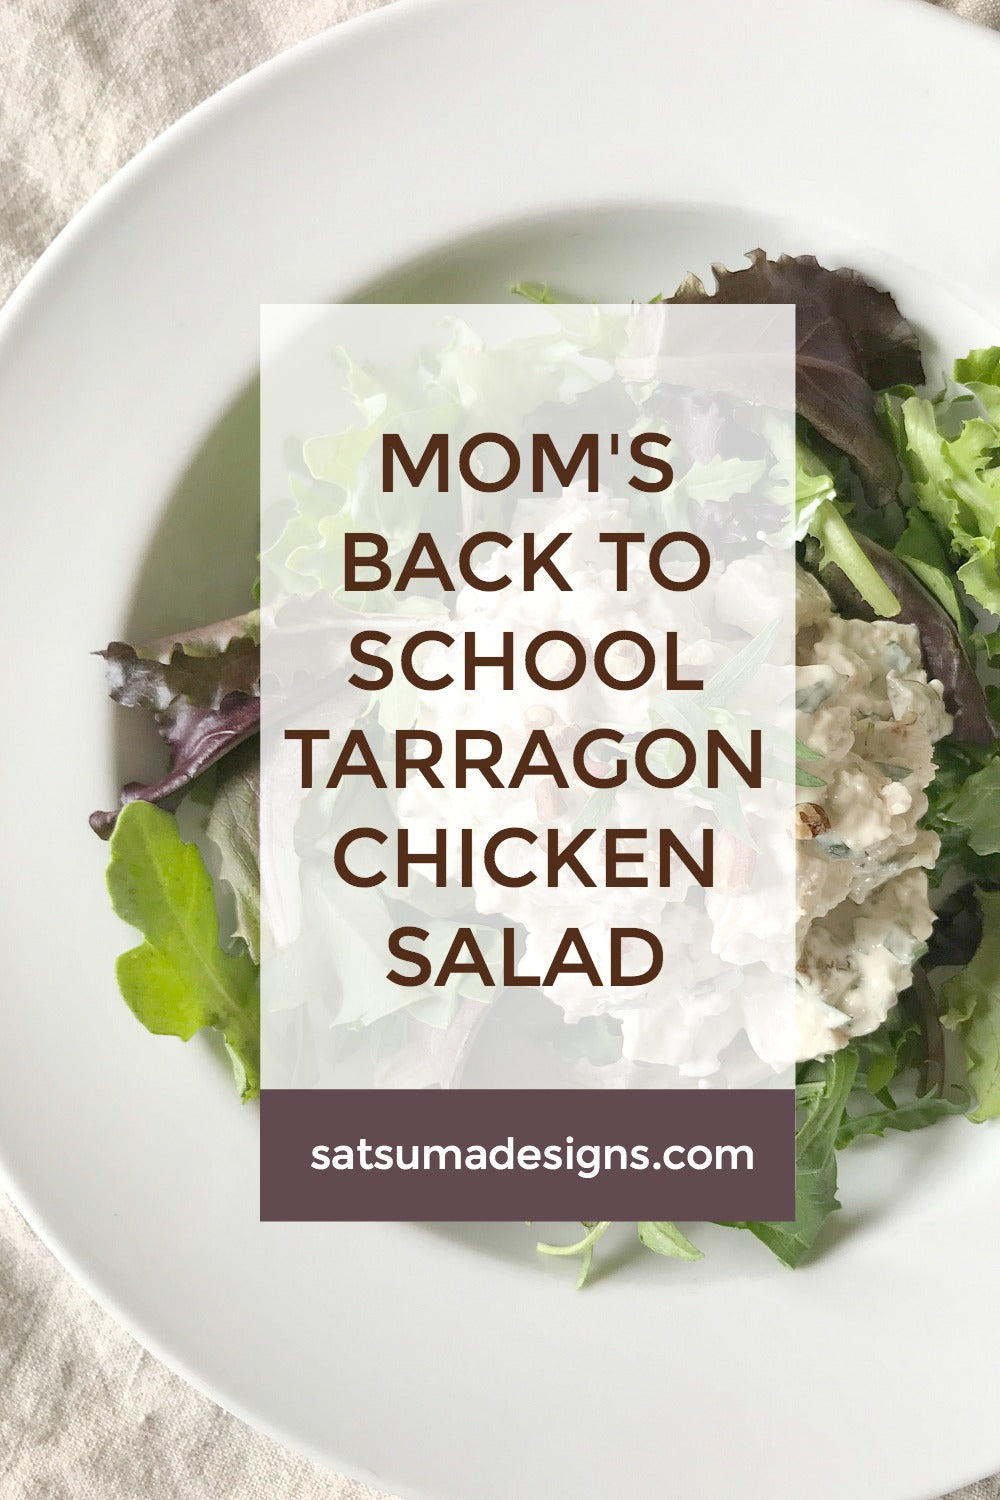 Mom's Back to School Tarragon Chicken Salad Recipe